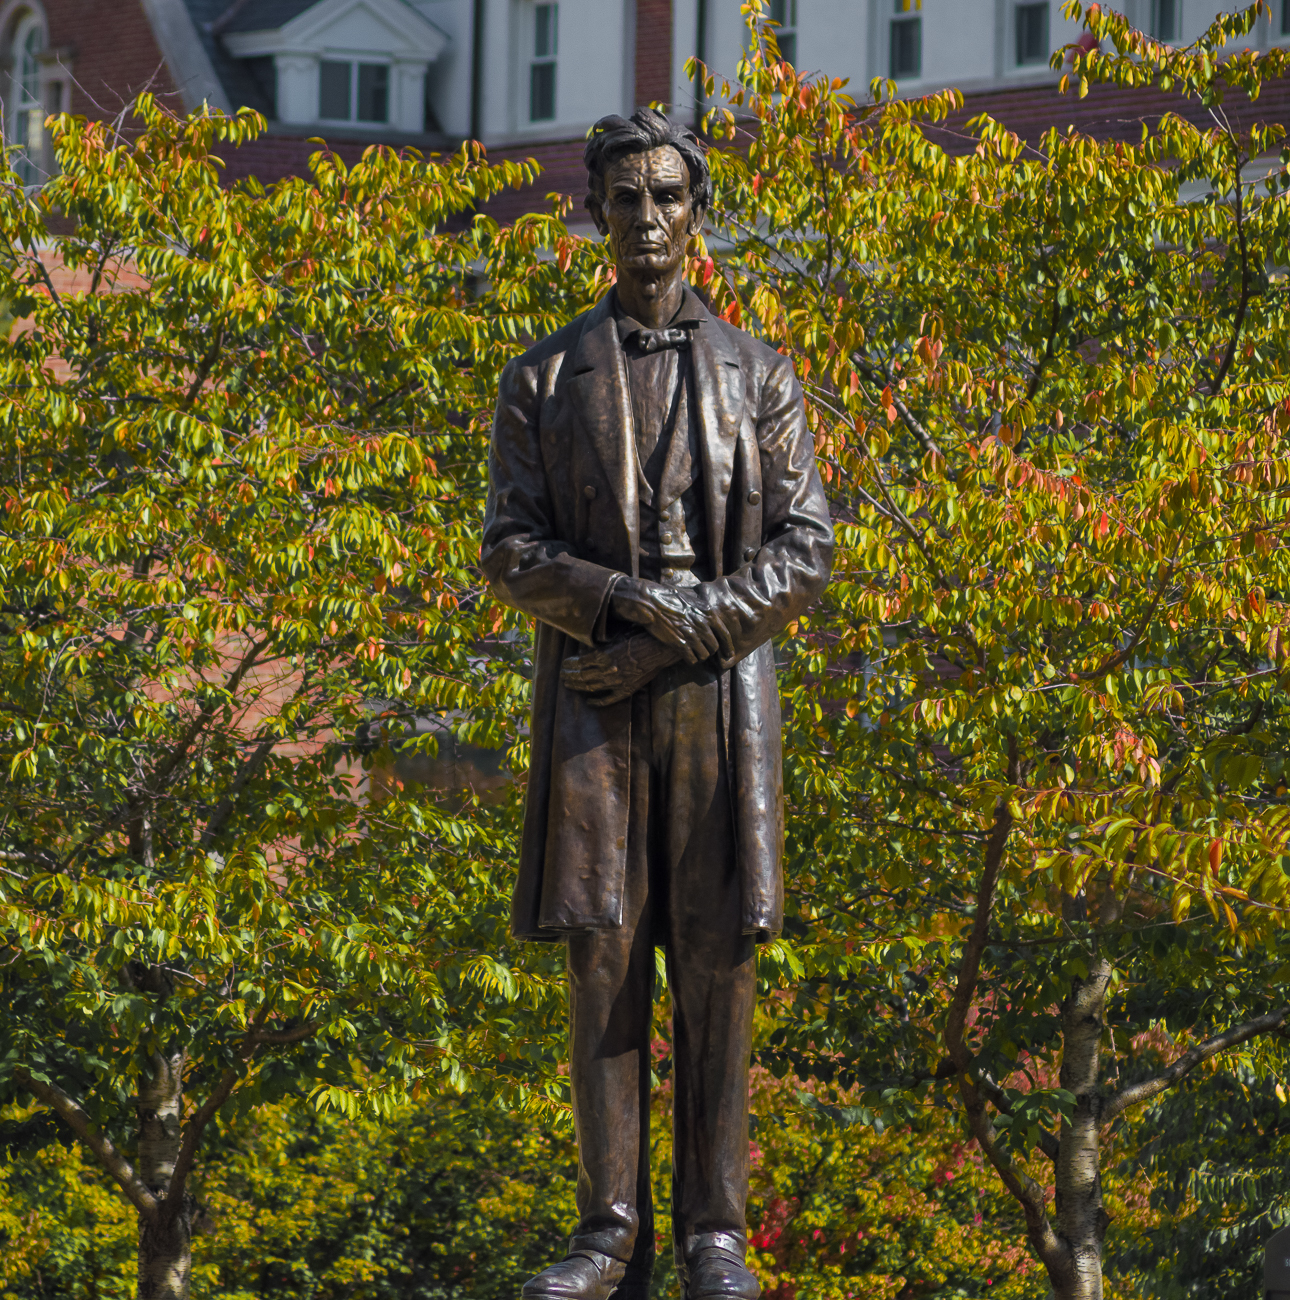 4th Street has a statue of Abe Lincoln / ADDRESS: corner of Ludlow and 4th Street / Image: Phil Armstrong, Cincinnati Refined // Published: 4.23.18